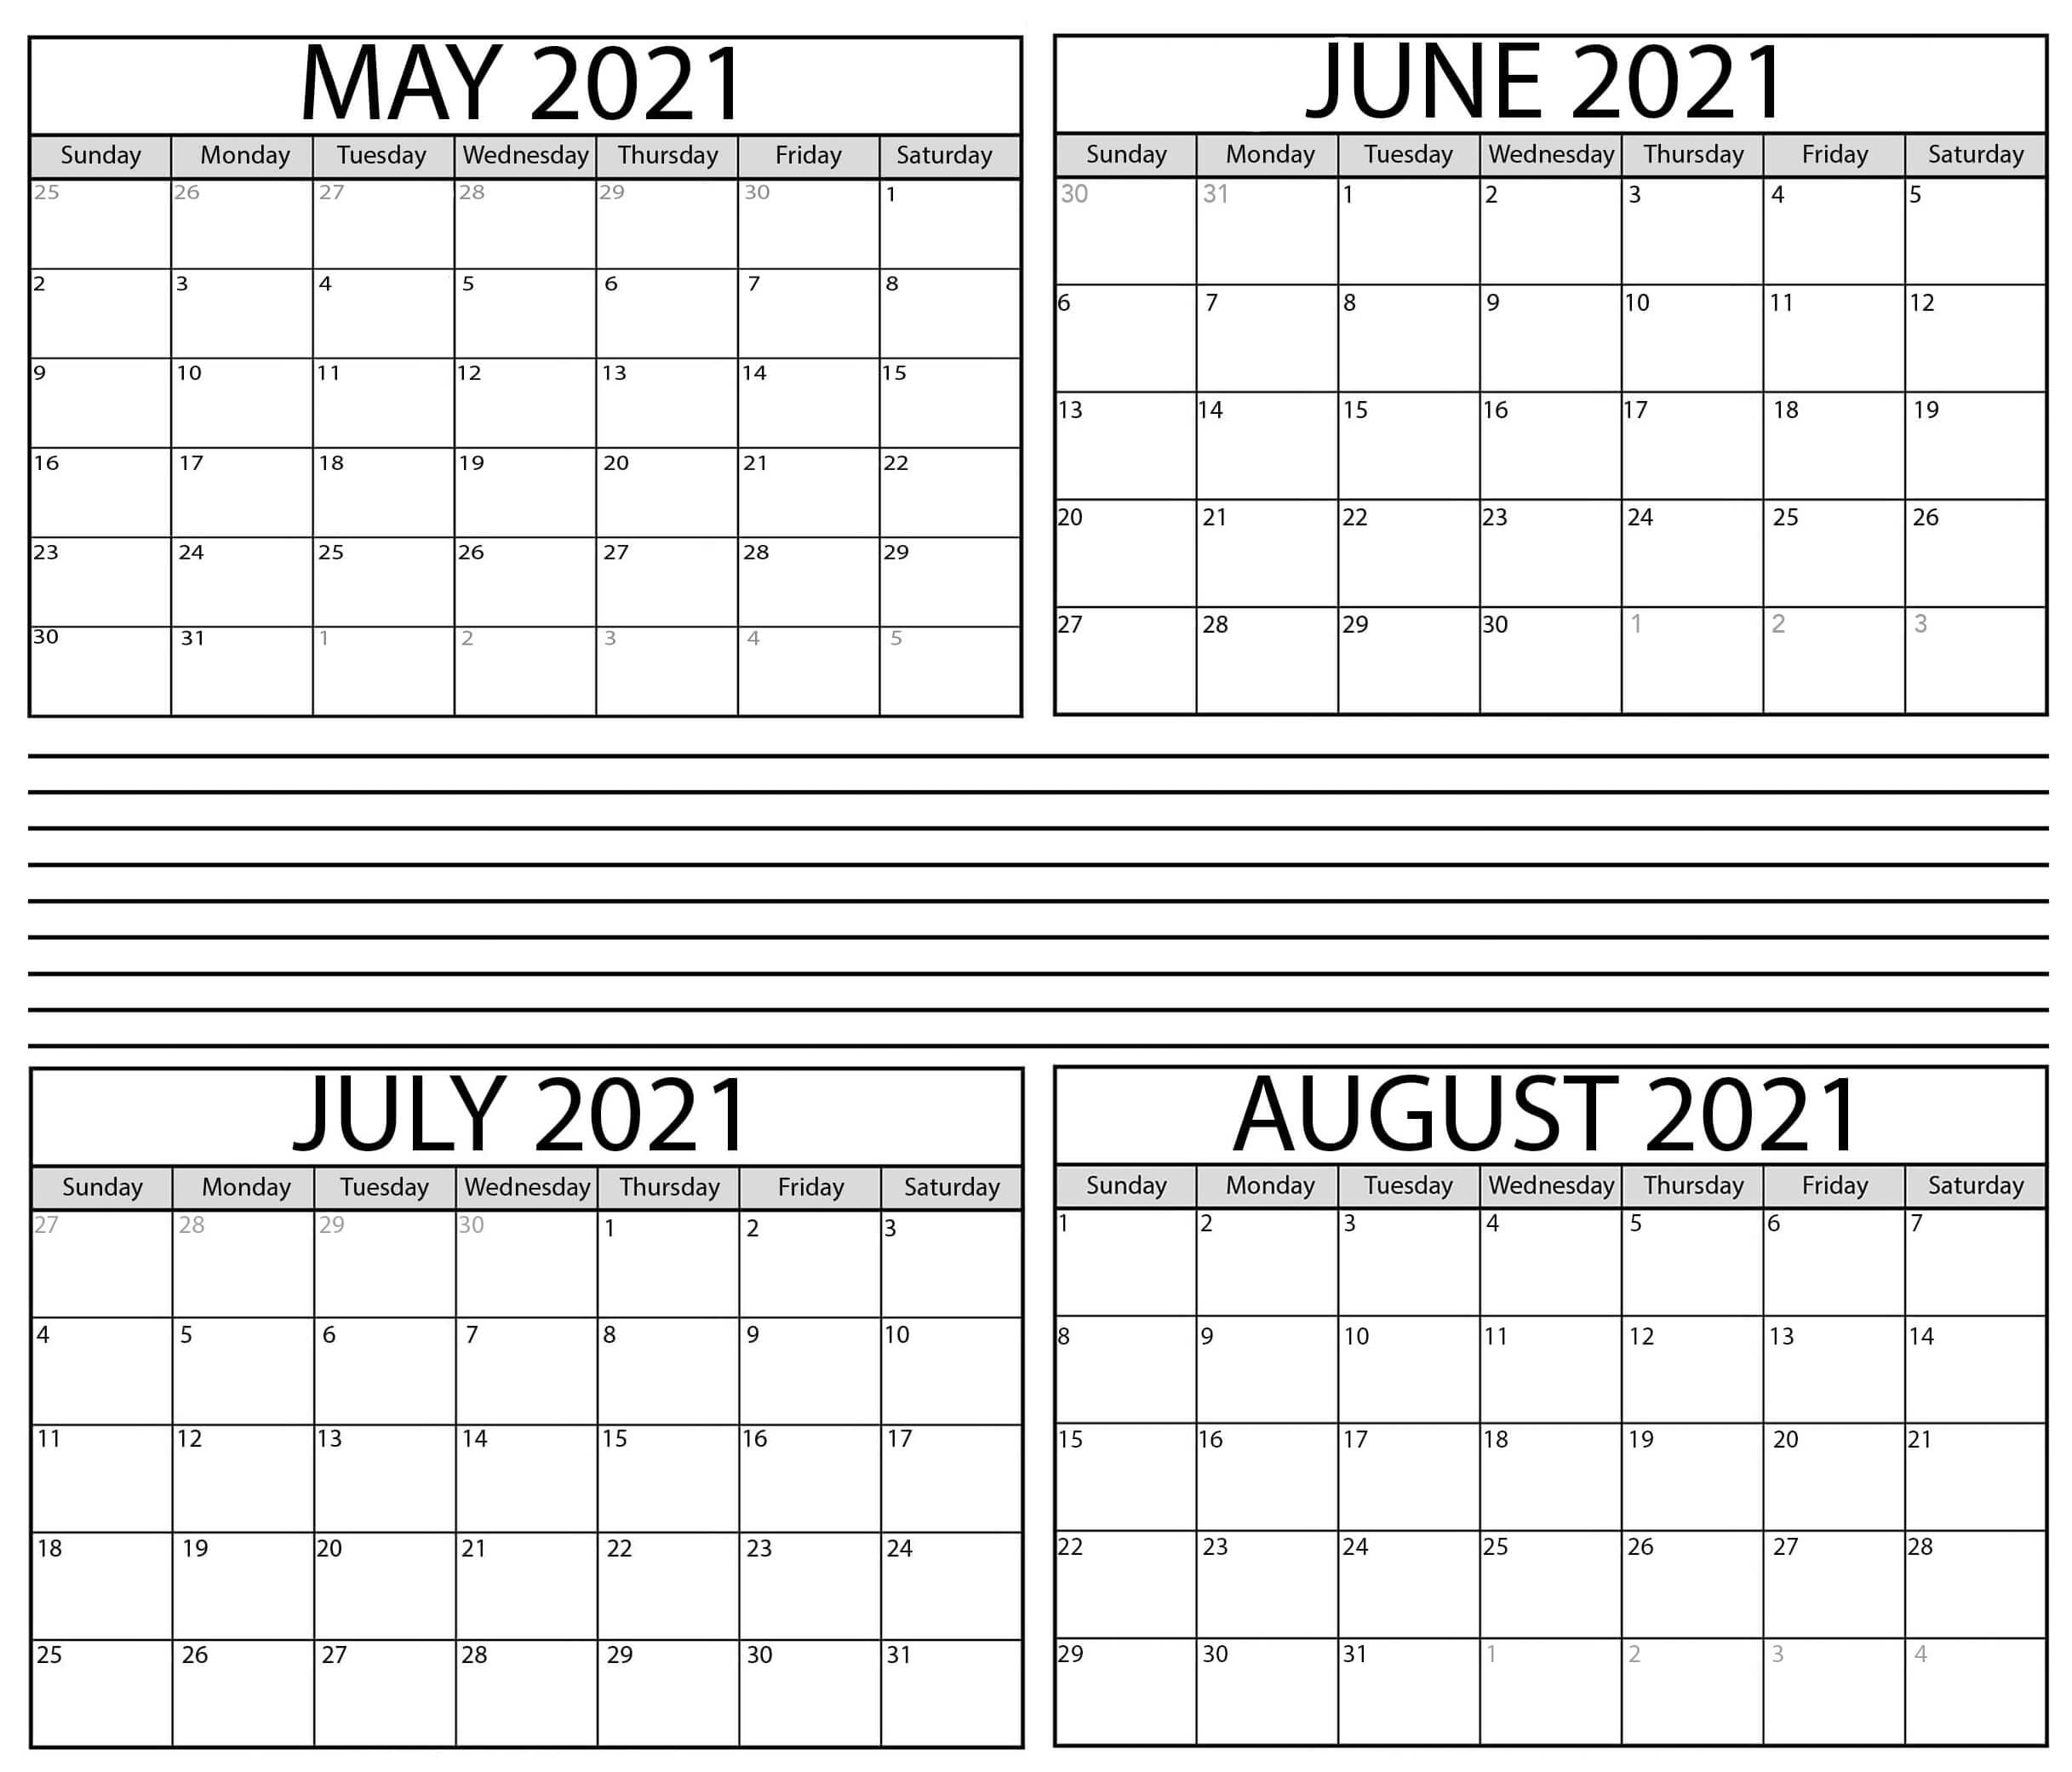 Free May to August 2021 Calendar